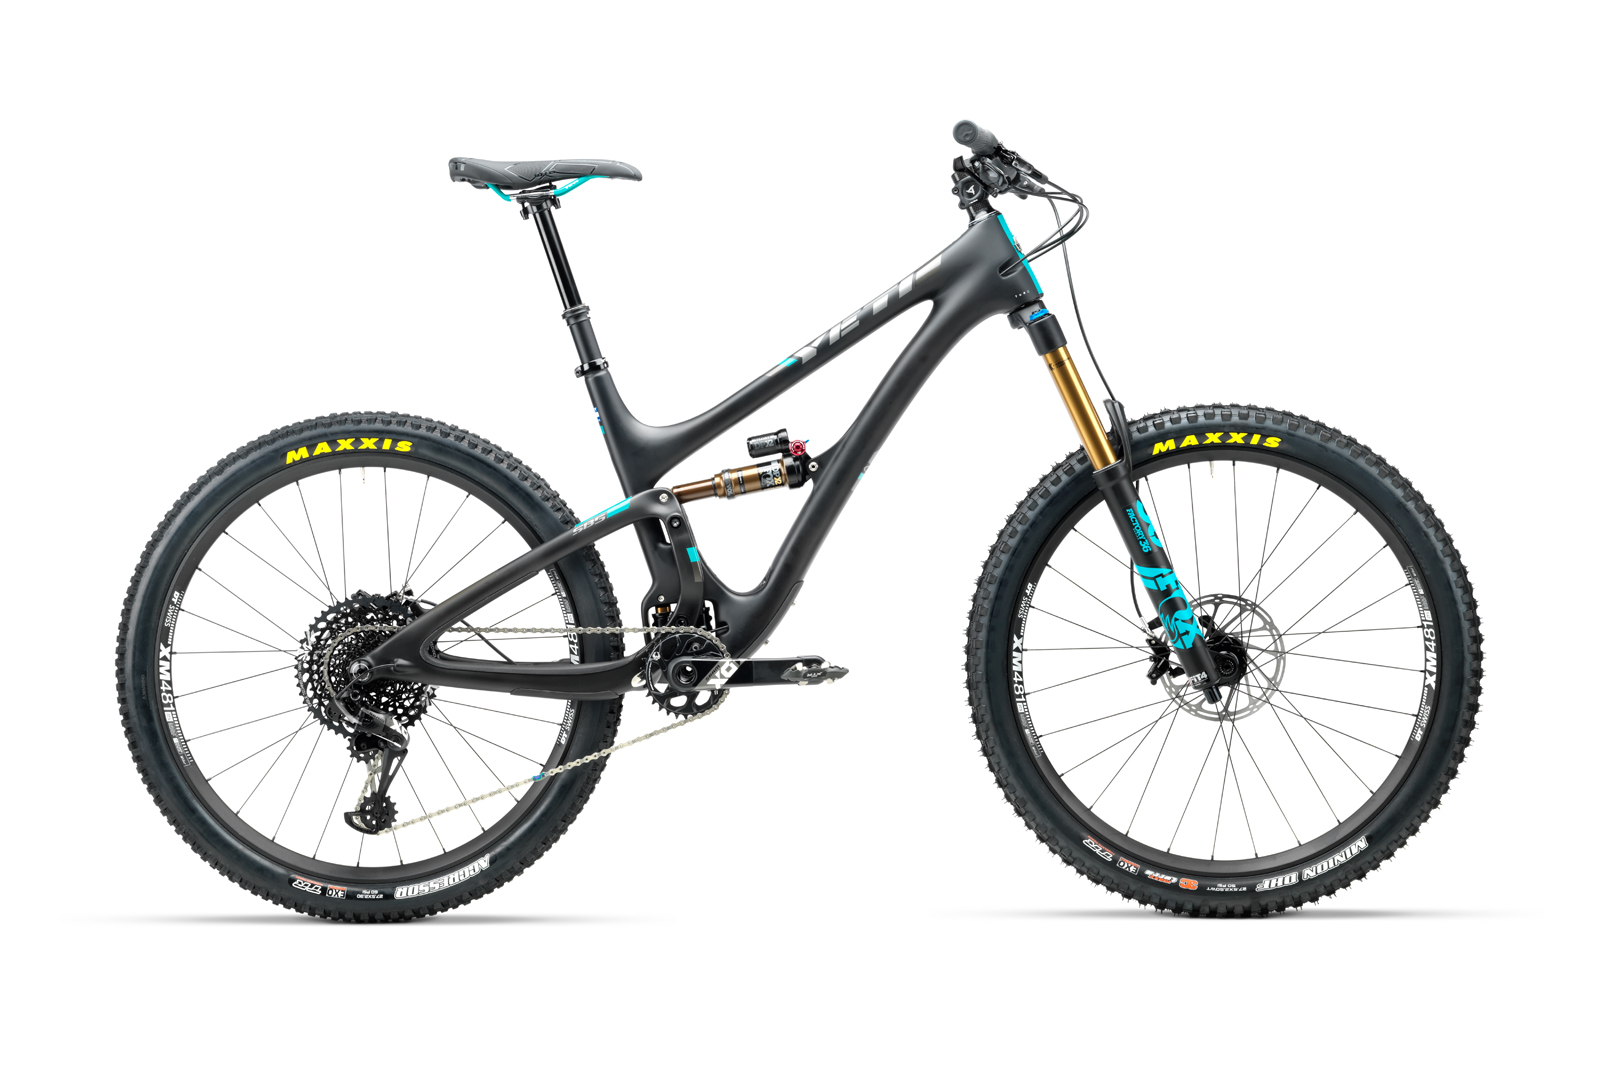 16002018_YetiCycles_SB5_TS_Black_X01_LunchRide